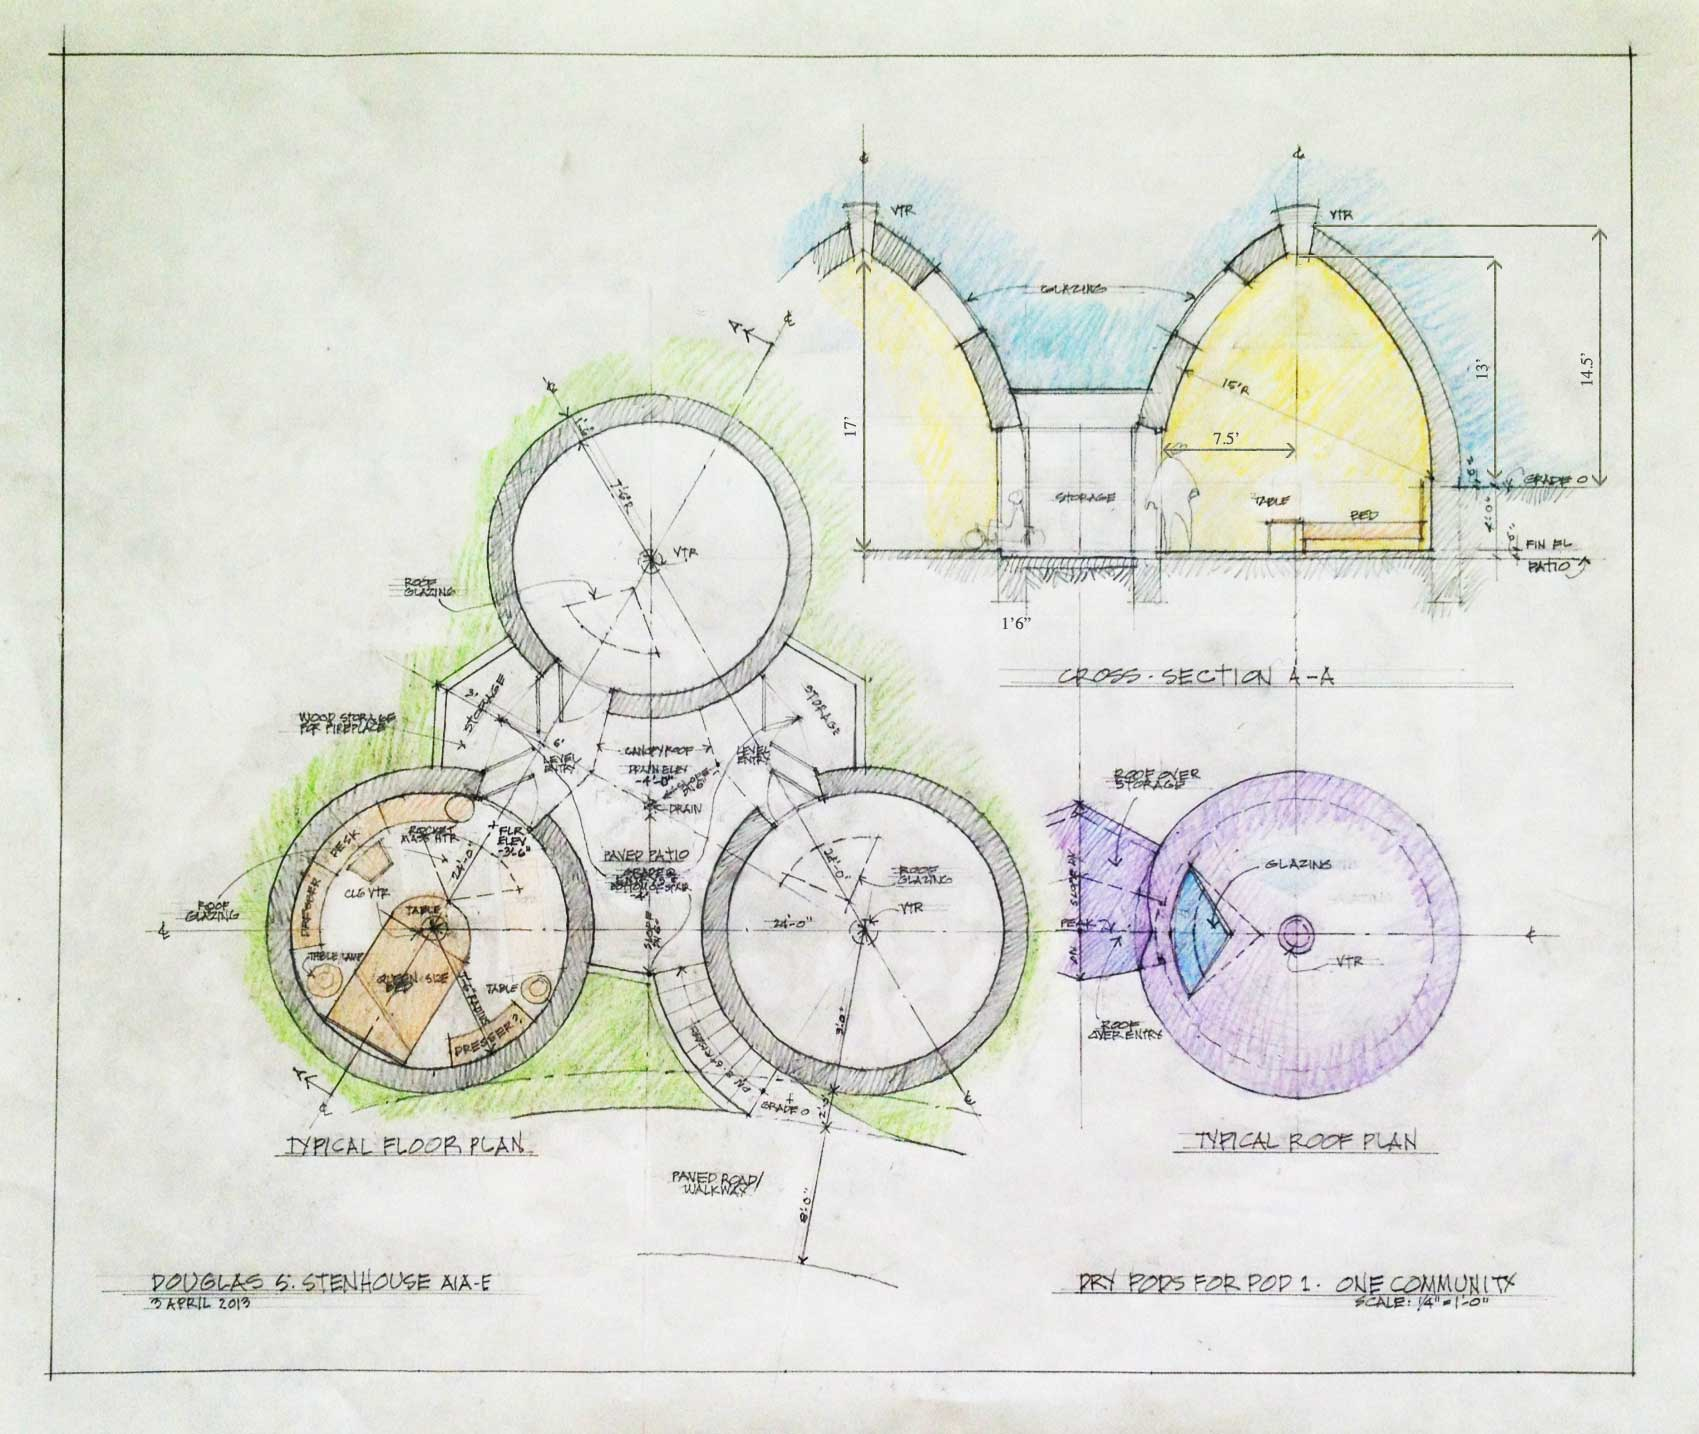 Basic Dome Home S Interior Plans: Portal: One Community Earthbag Construction Village (Pod 1